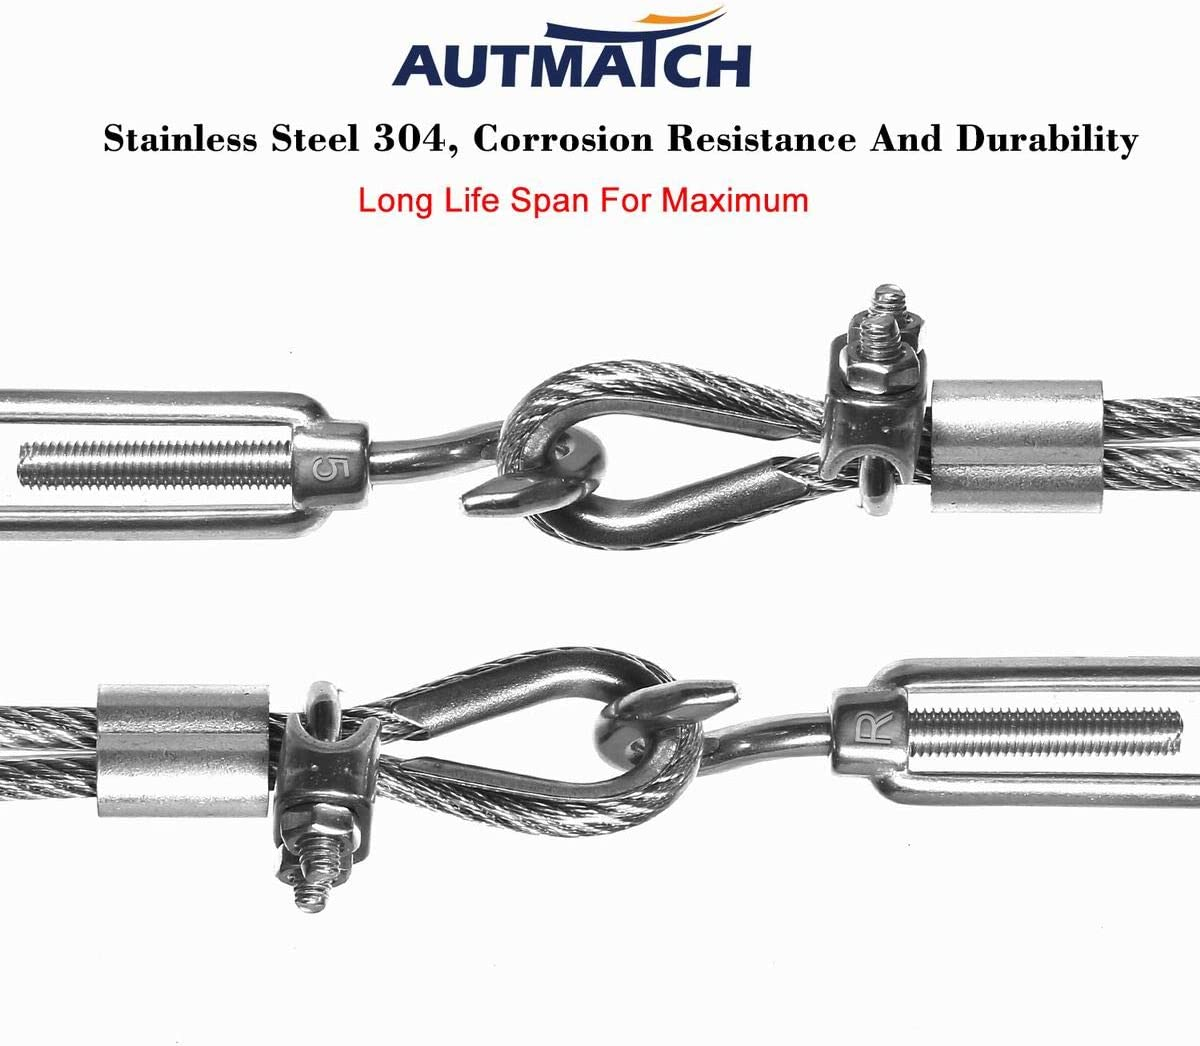 Autmatch M6 Stainless Steel 304 Turnbuckle Hook and Hook Light Duty Wire Rope Tension Pack of 5